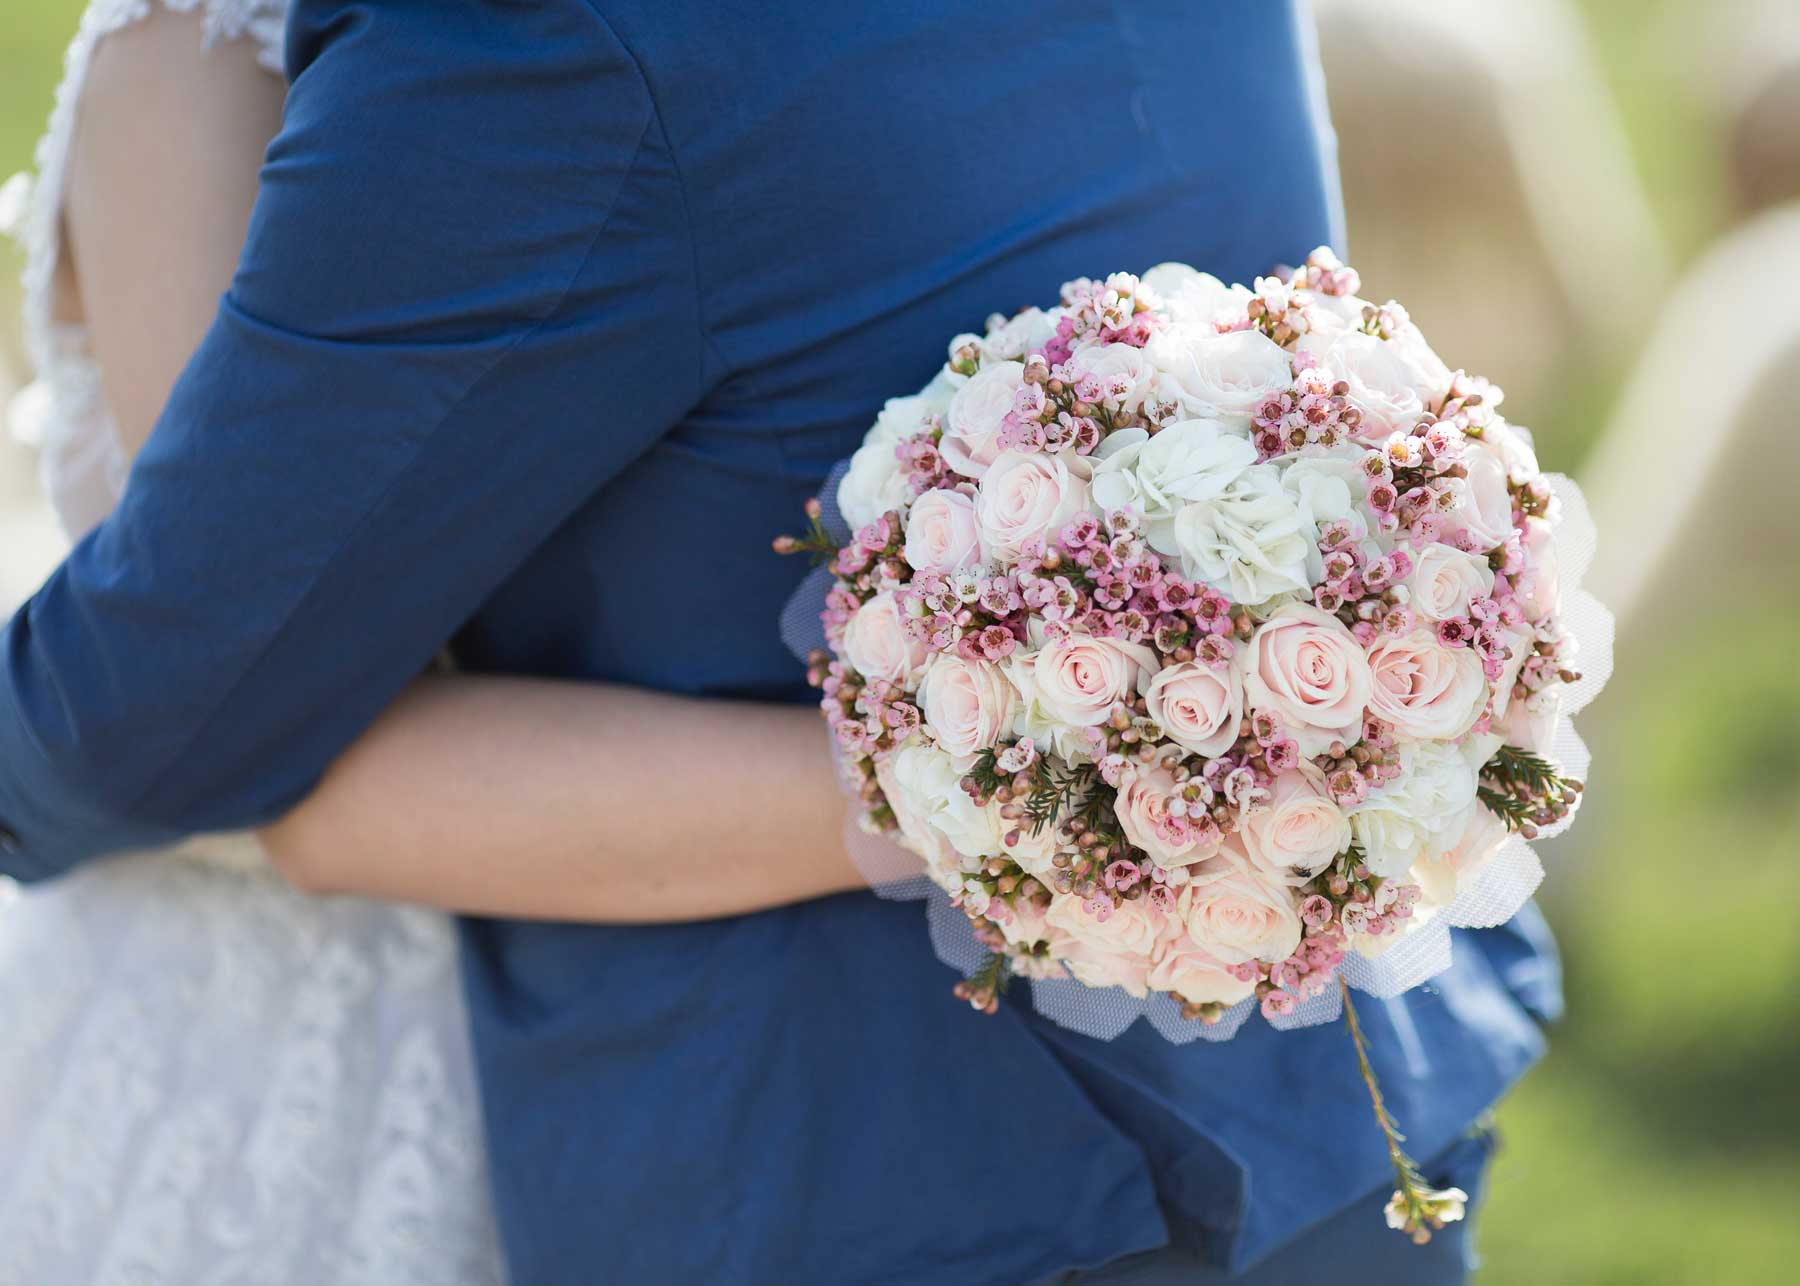 bride and groom embrace for hug while woman holds onto her full round flower bouquet